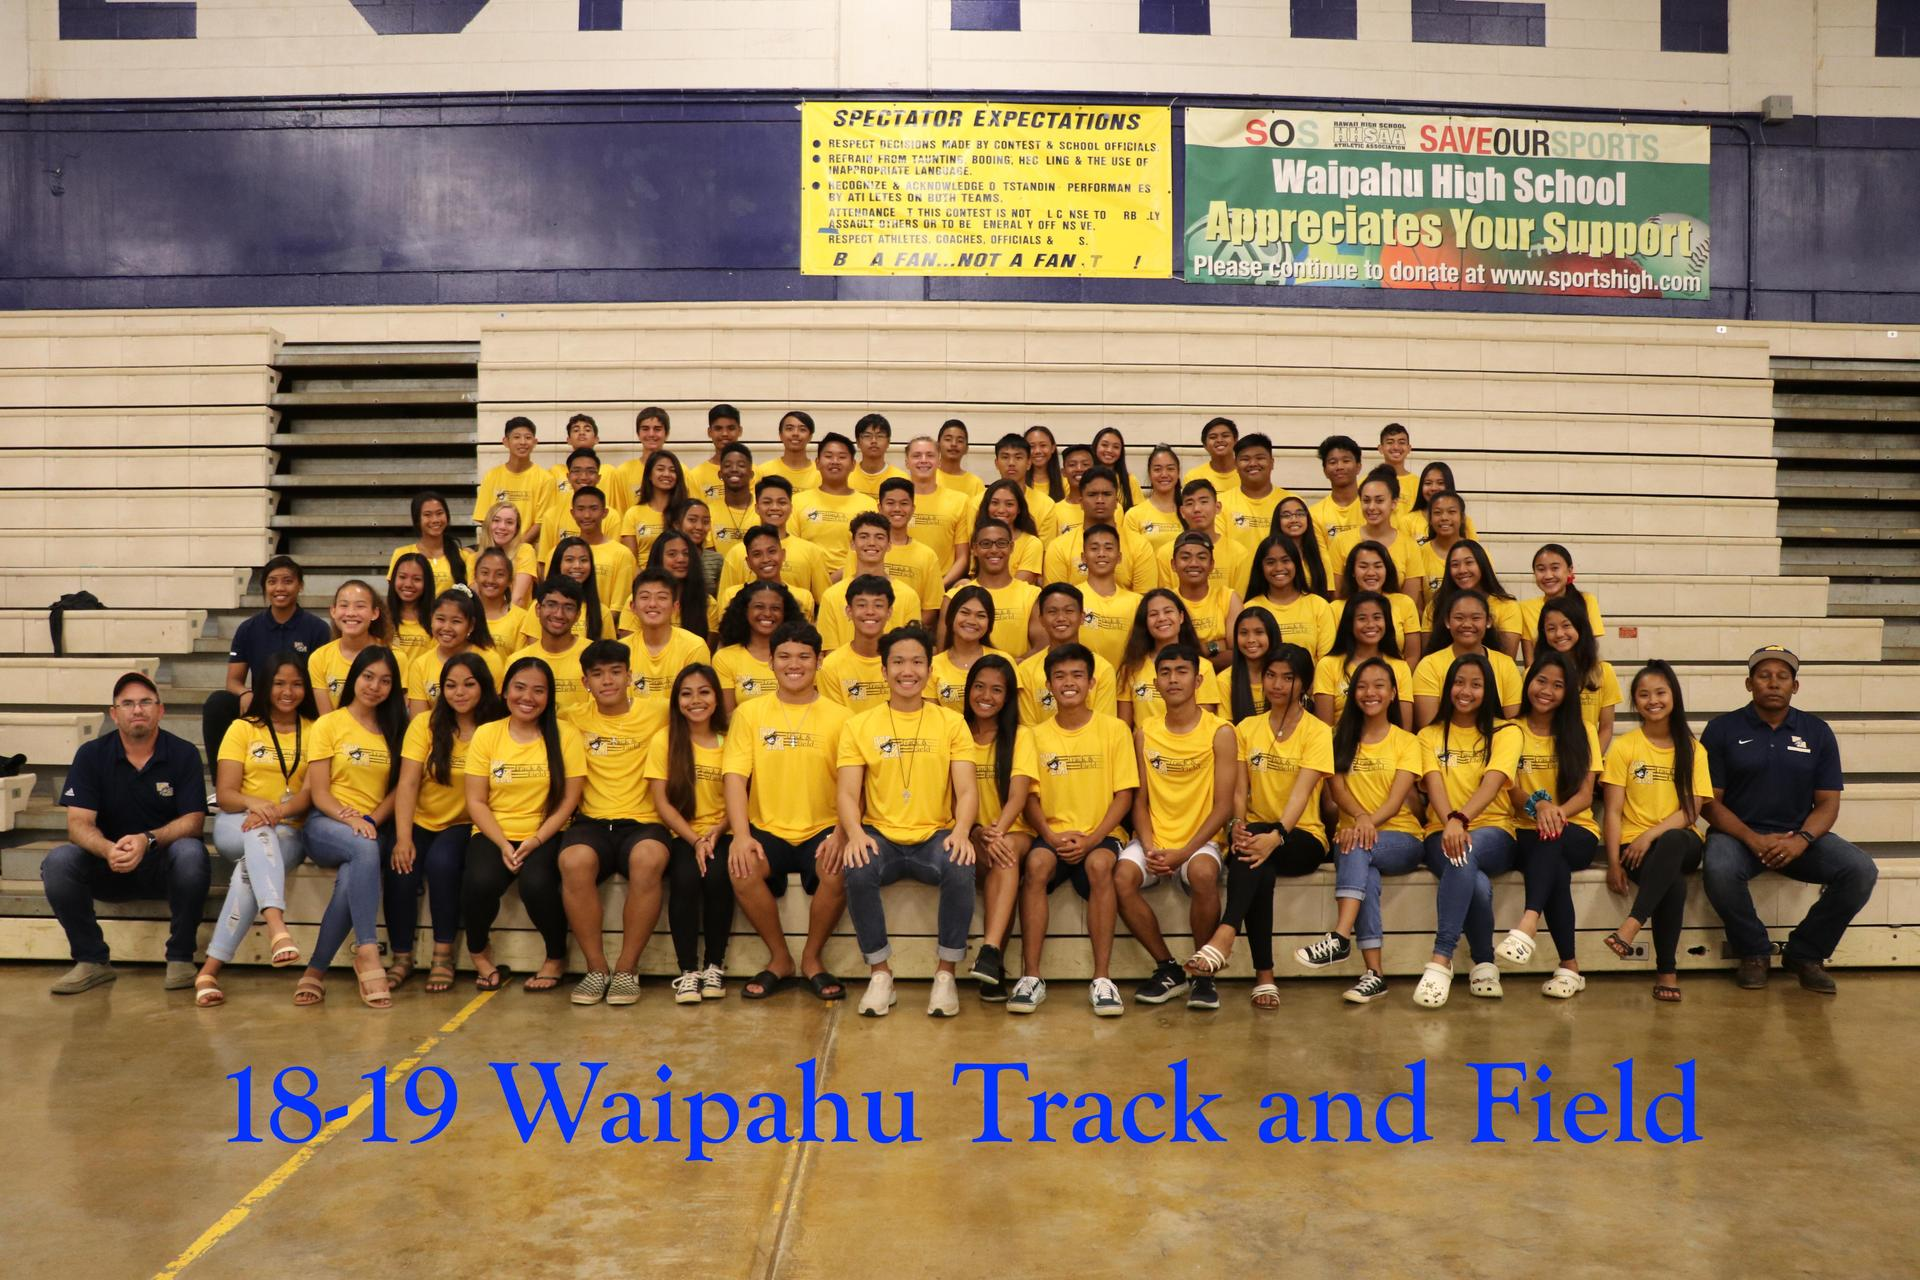 18-19 Track and Field